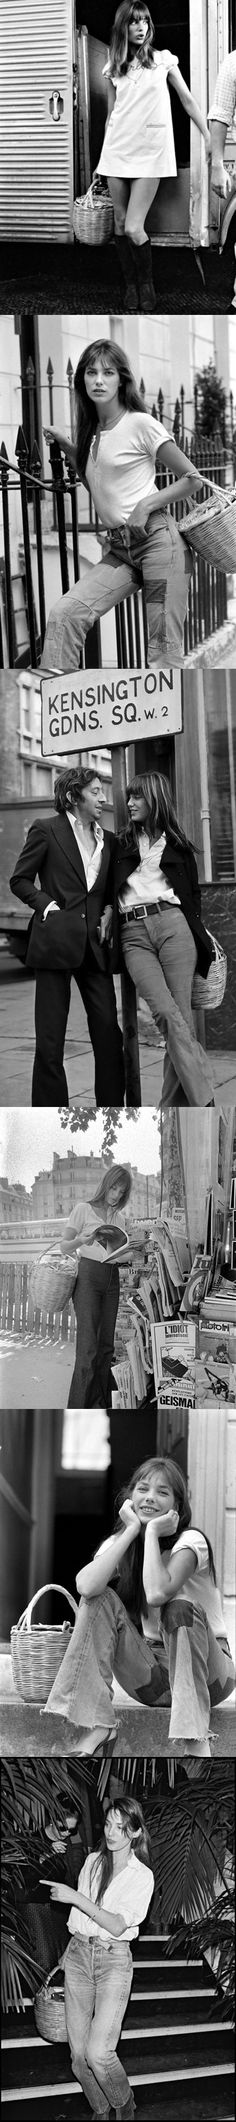 JANE BIRKIN & Serge Gainsbourg   at Kensington Gardens  Sq. where i was staying in London.